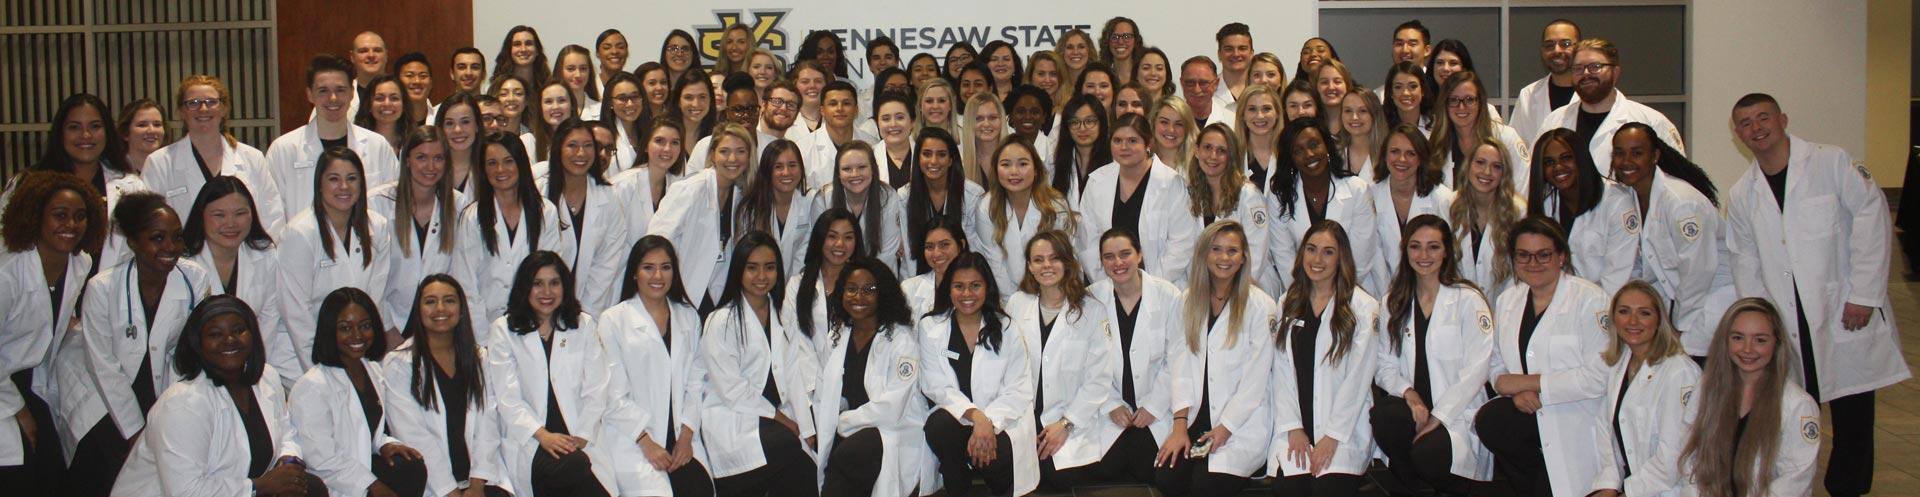 Spring 2020 White Coat Ceremony